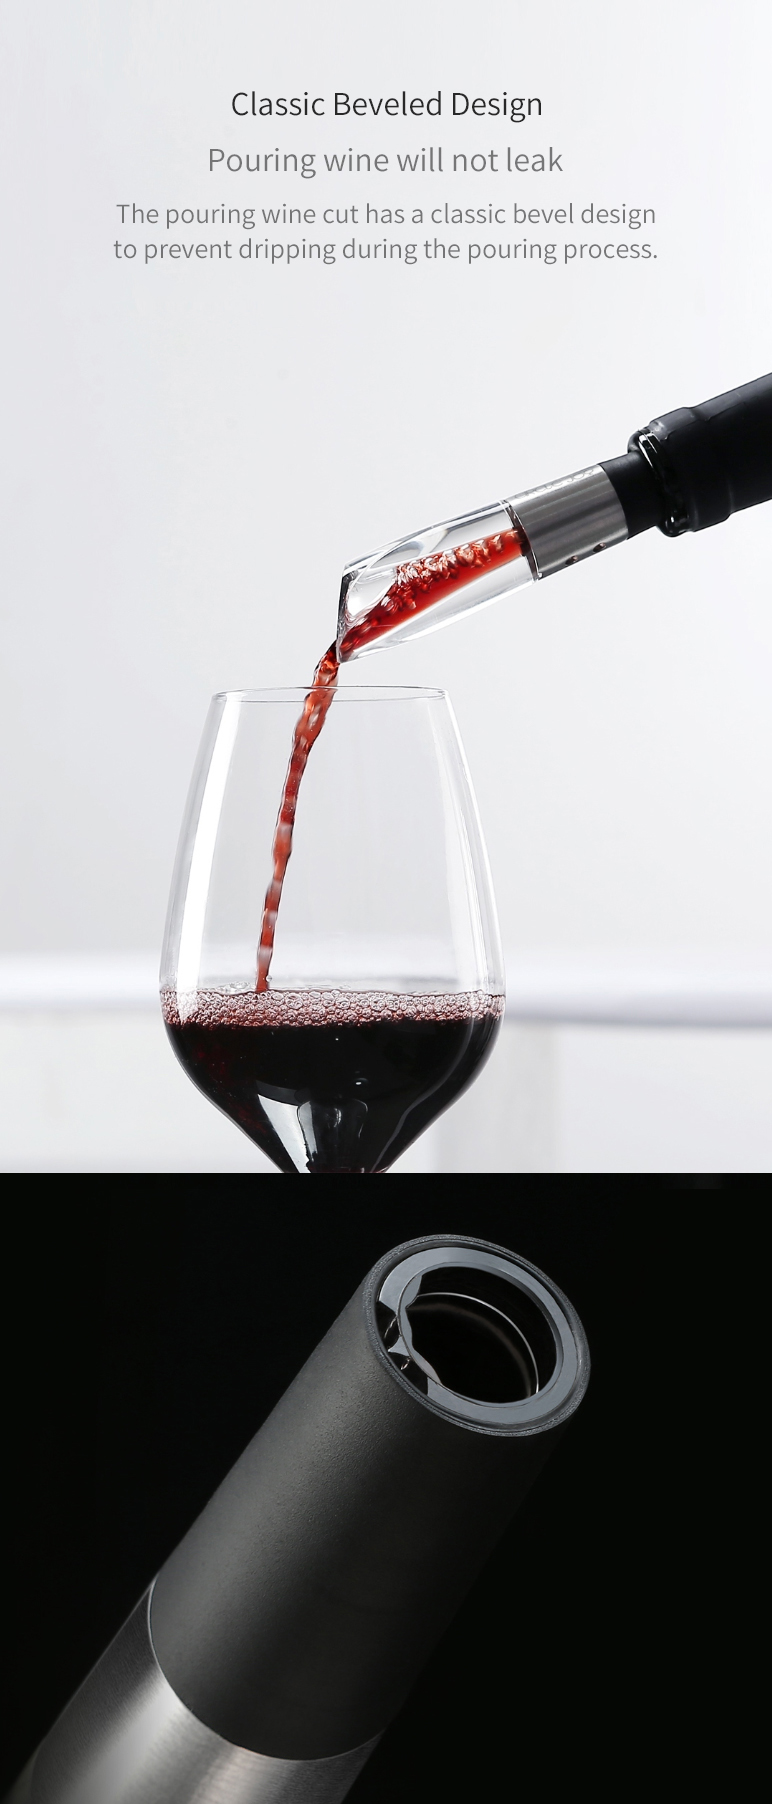 XIAOMI CIRCLE JOY Stainless Steel Fast Decanter Wine Decanter Wine Pouring Tools